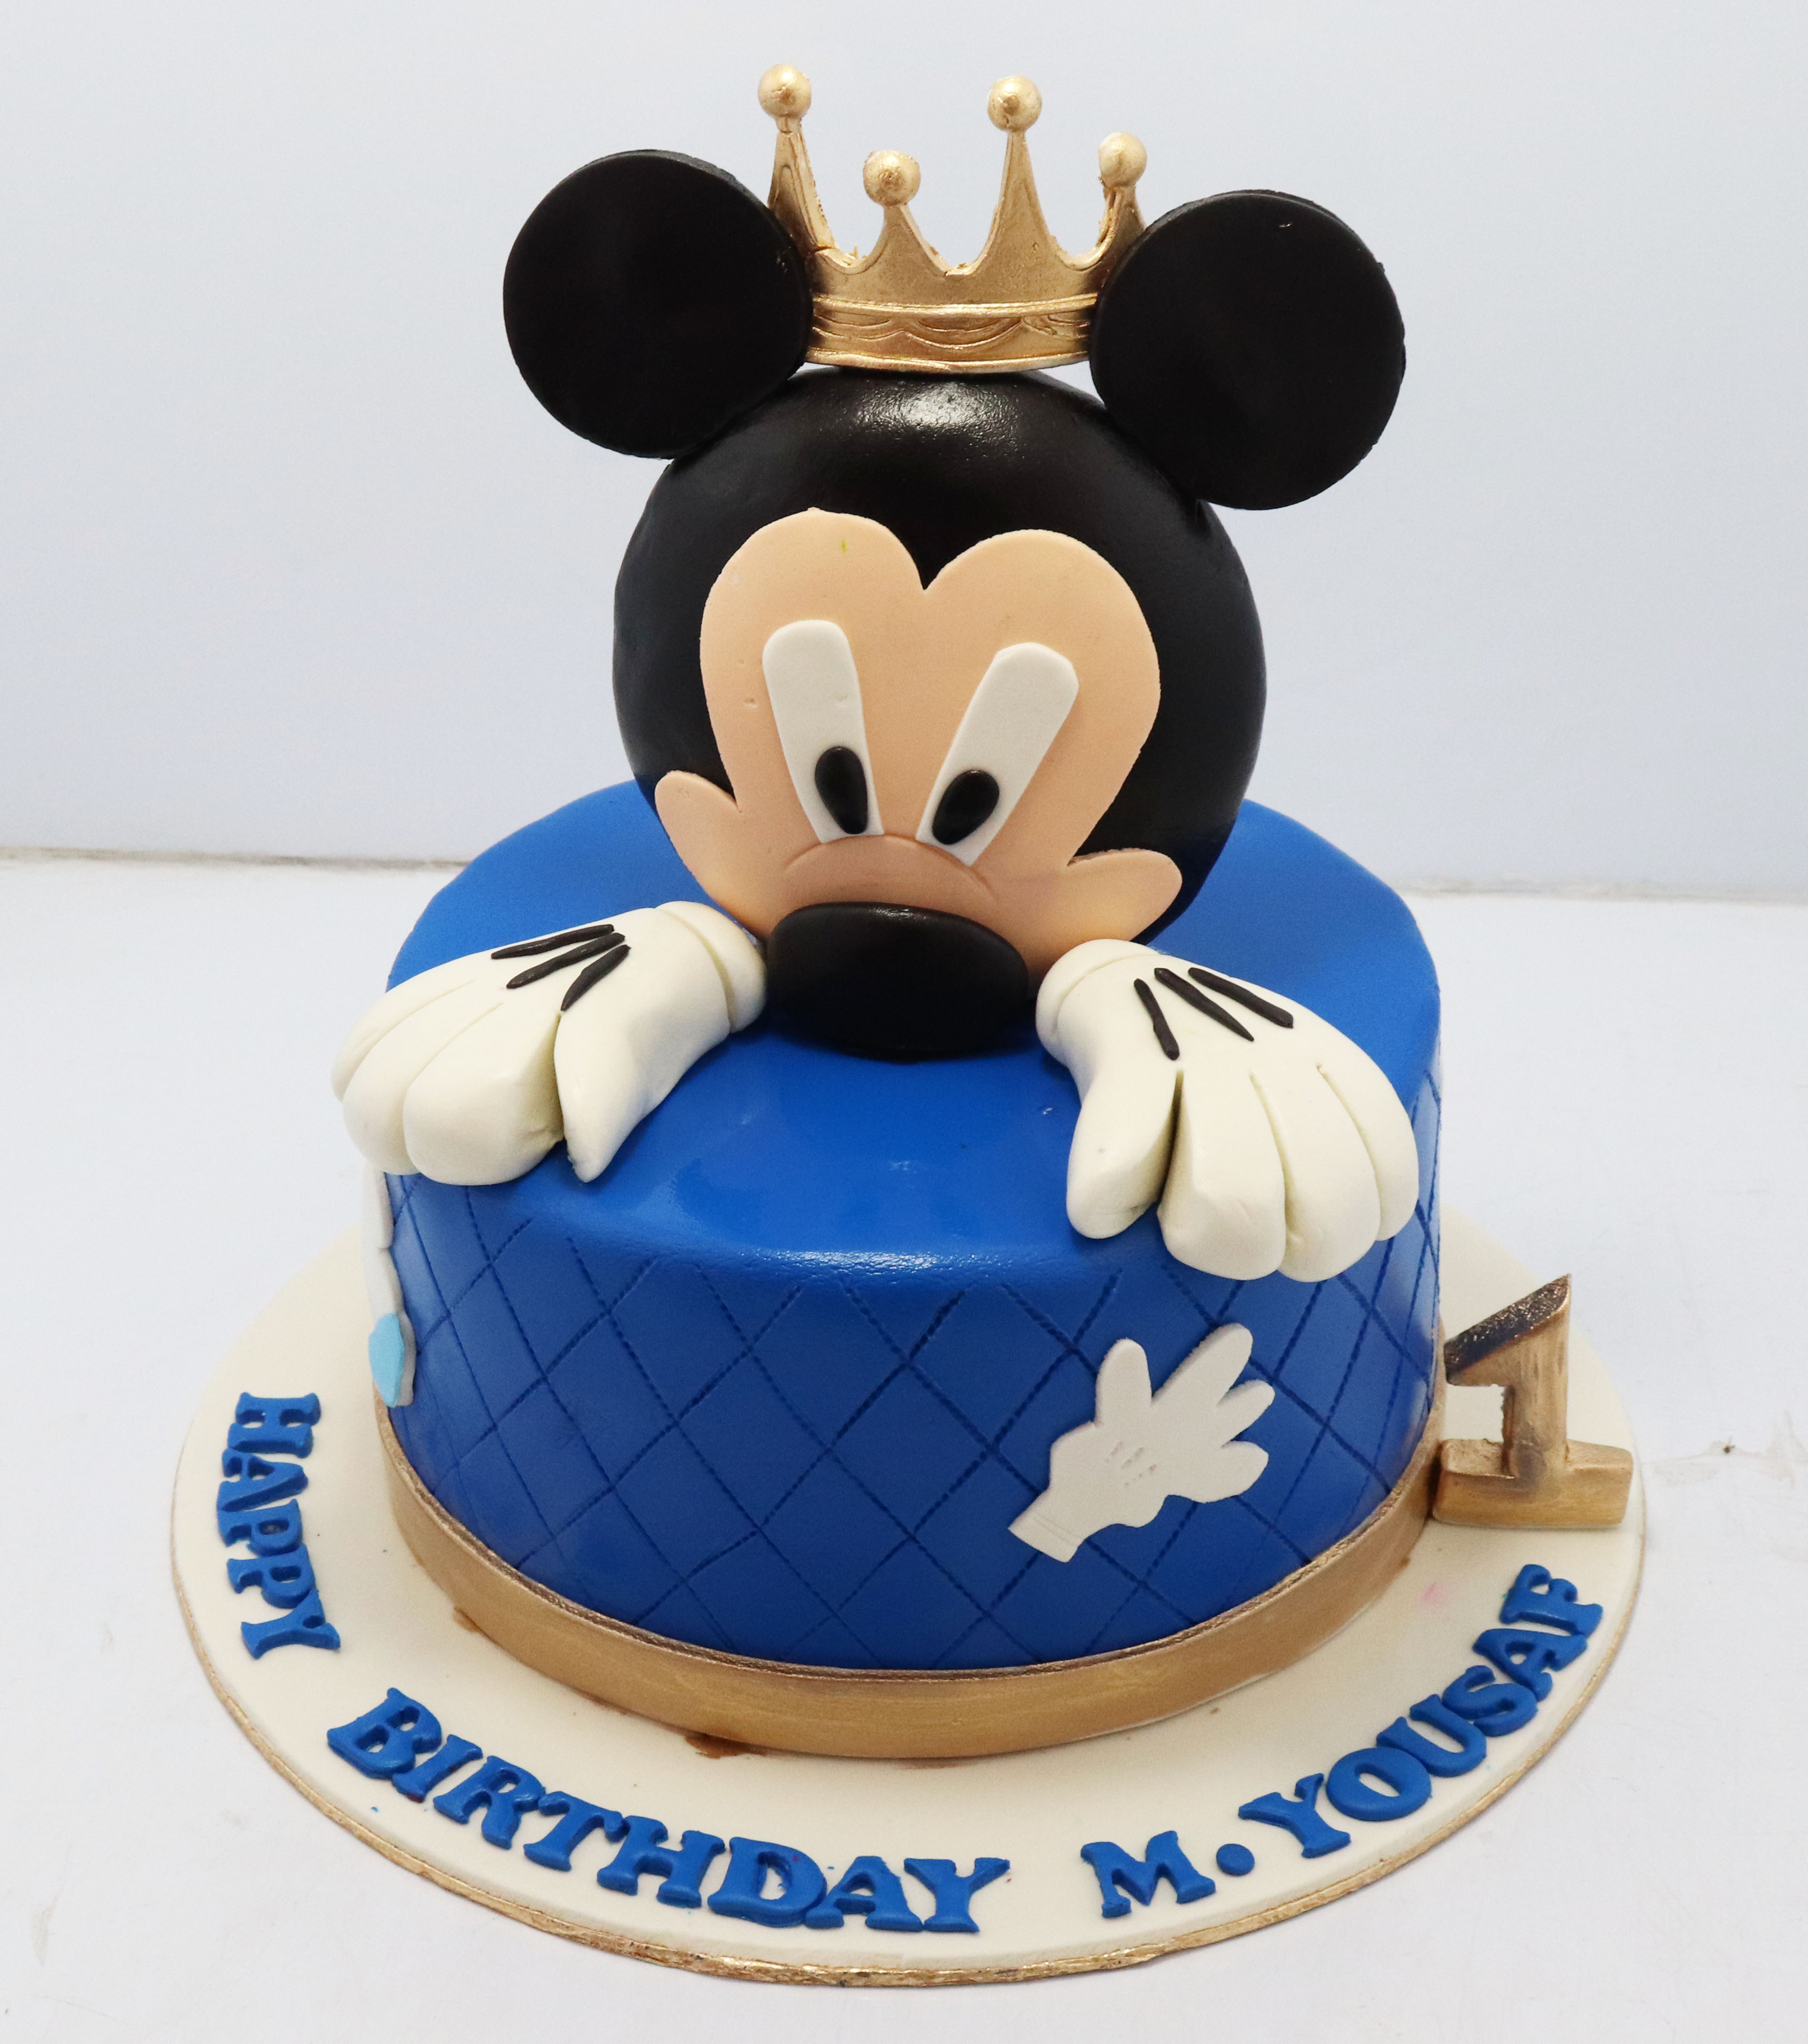 Remarkable Mickey Mouse Kids Birthday Cake Bakisto Pk Lahore Free Delivery Birthday Cards Printable Benkemecafe Filternl